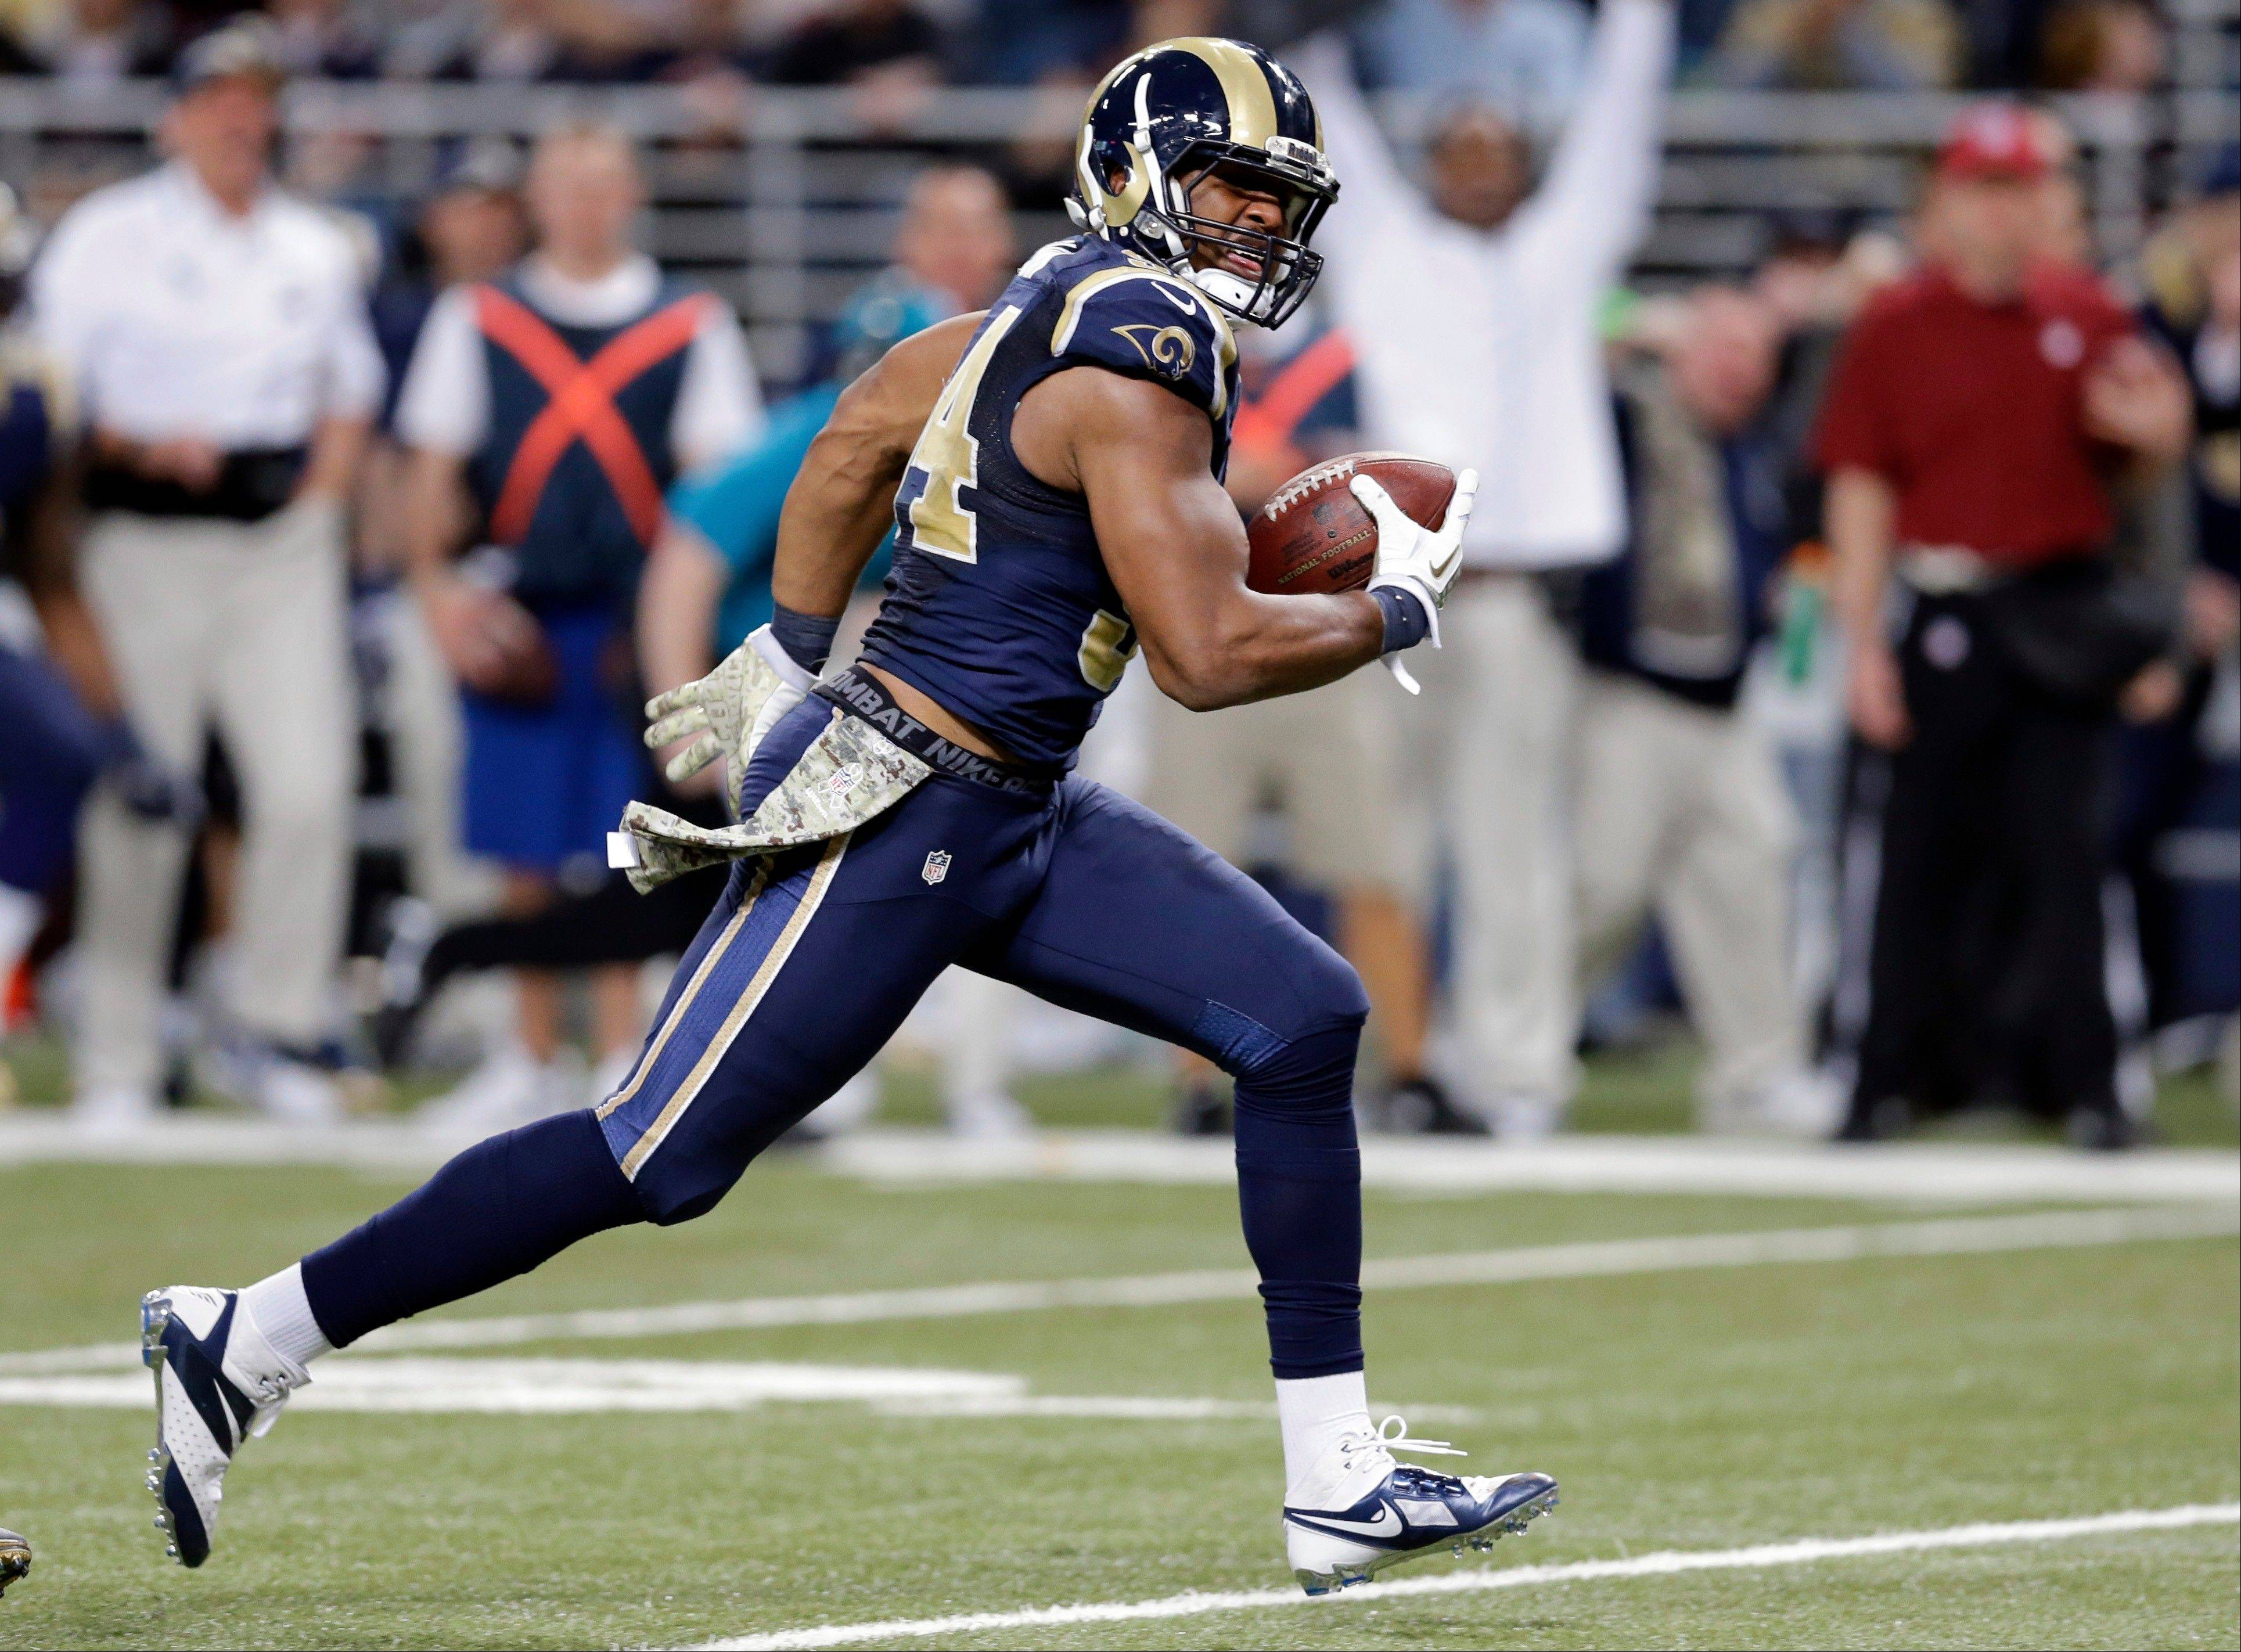 St. Louis Rams defensive end Robert Quinn runs the ball back 31 yards for a touchdown after recovering a fumble by Chicago Bears quarterback Josh McCown during the fourth quarter. The Rams won 42-21.